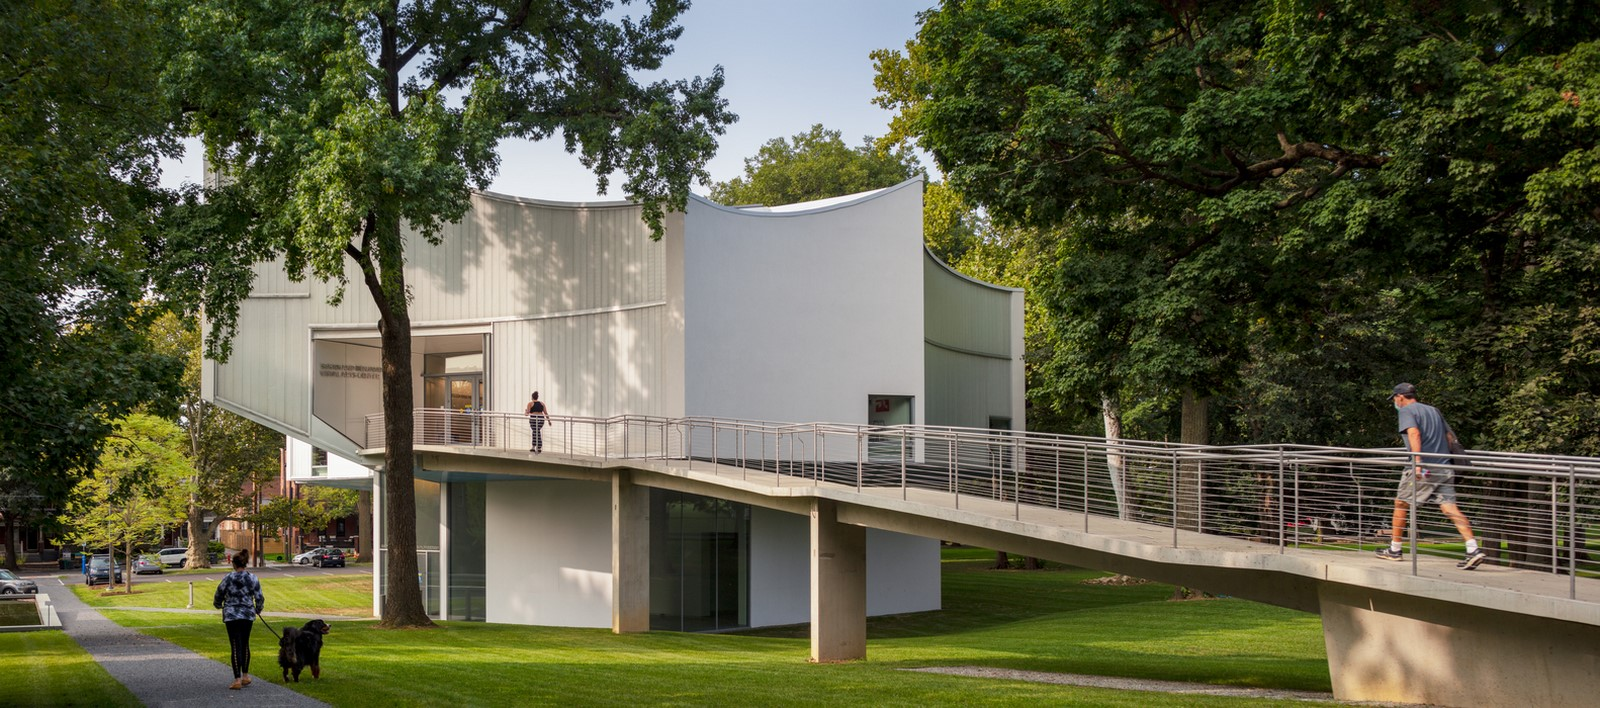 'Winter visual arts building' at Franklin & Marshall College opened by Steven Holl architects - Sheet1